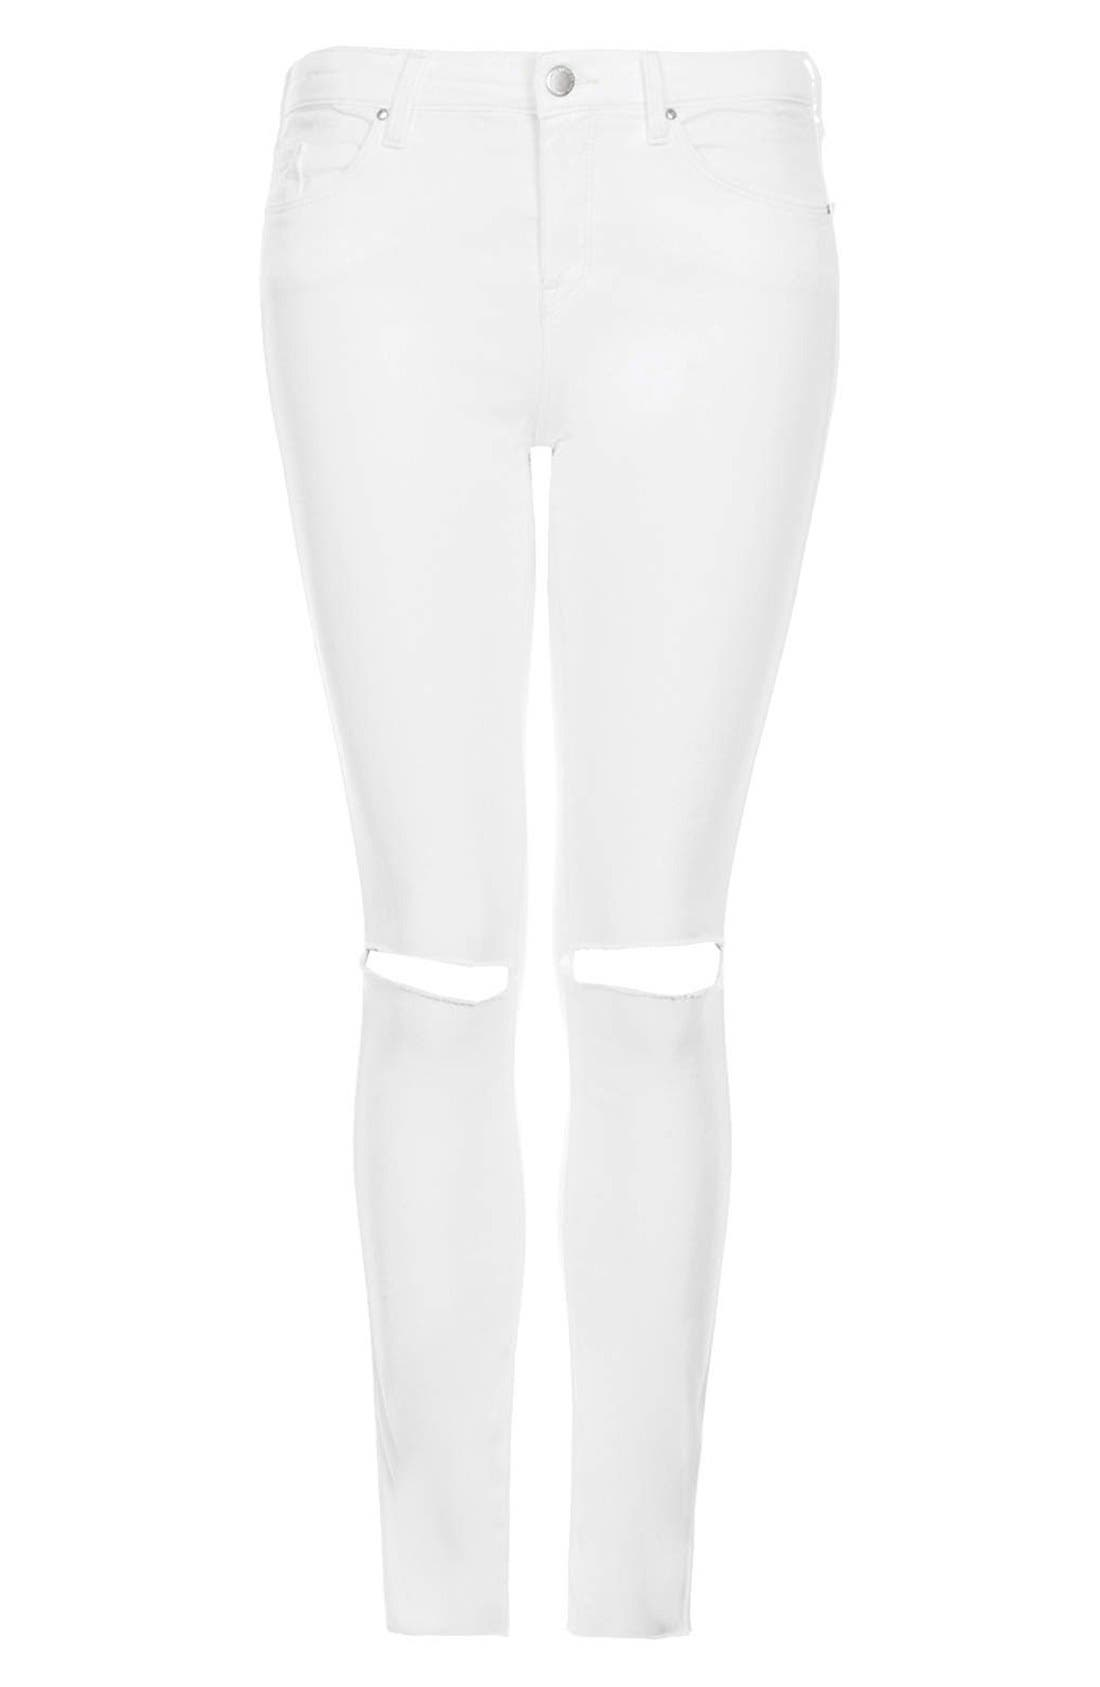 TOPSHOP, Moto 'Leigh' Distressed Skinny Jeans, Alternate thumbnail 2, color, 100